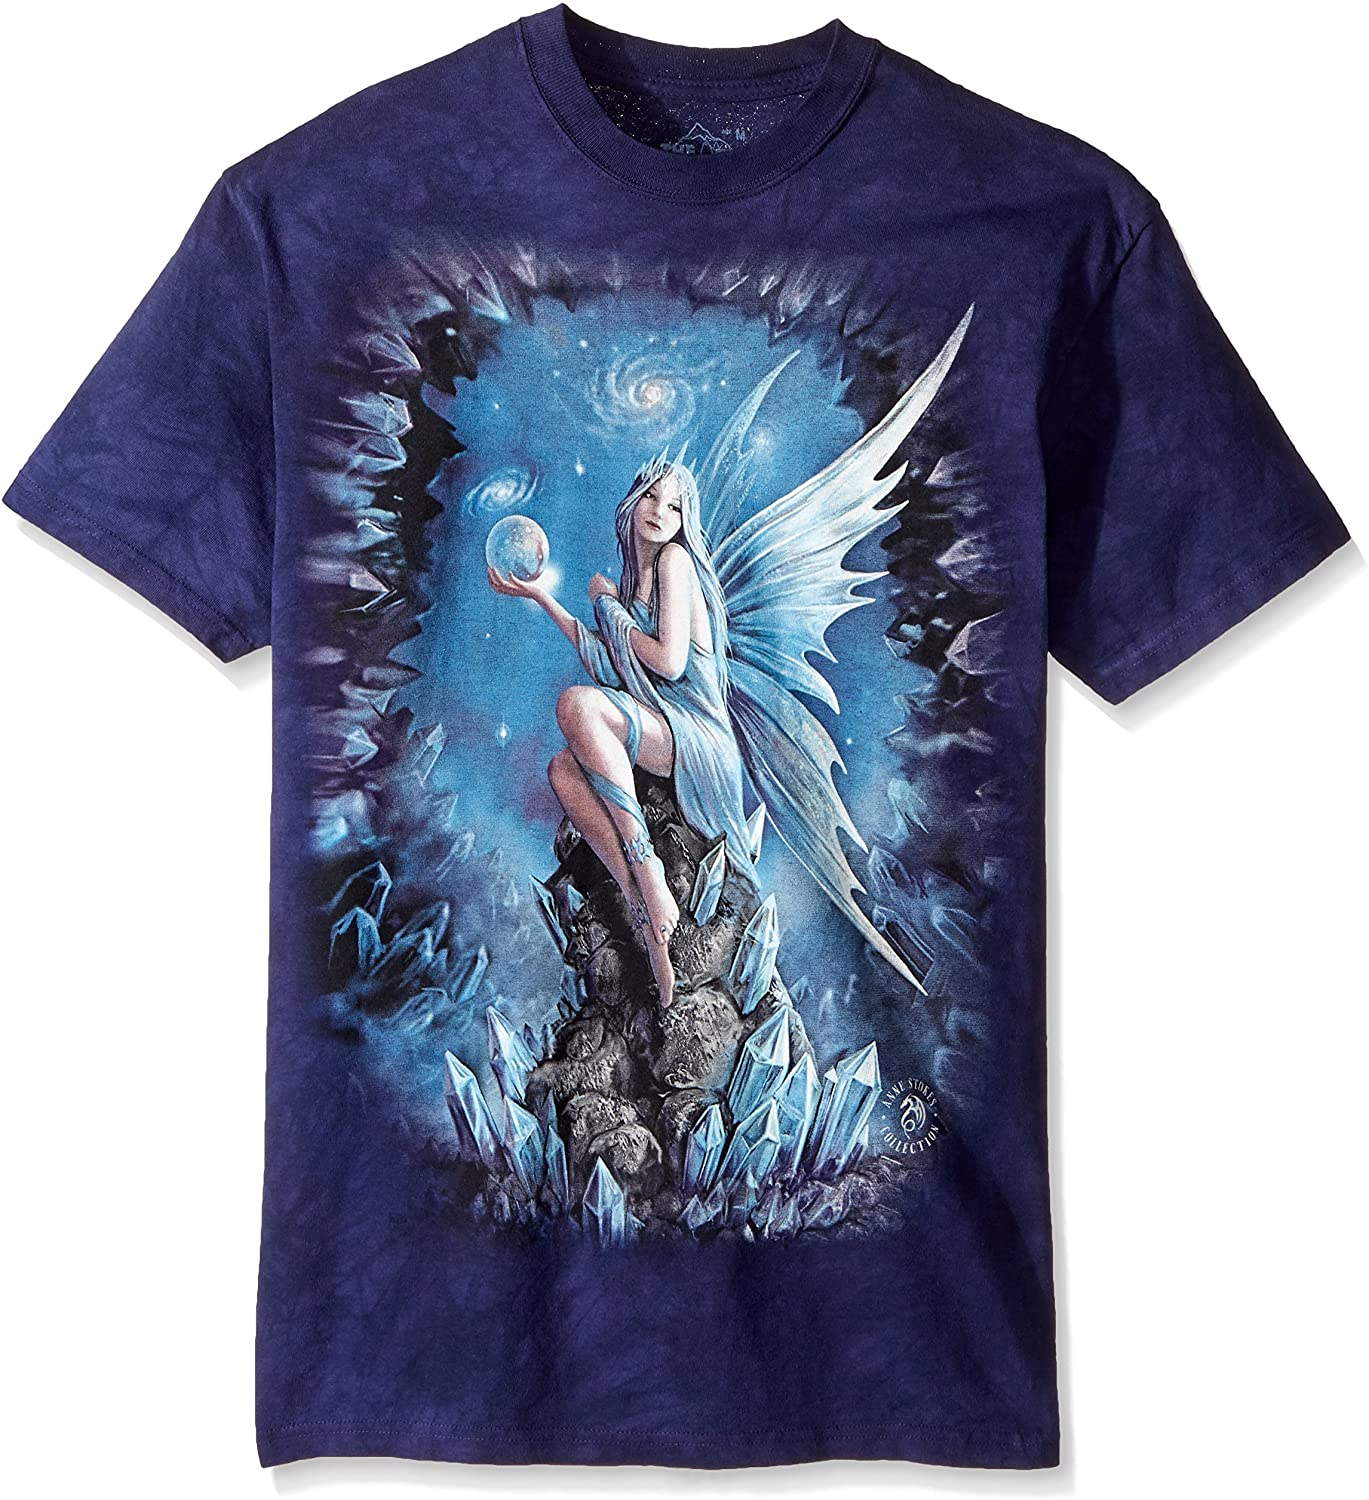 The Mountain Stokes Stargaze High quality new T-Shirt Very popular